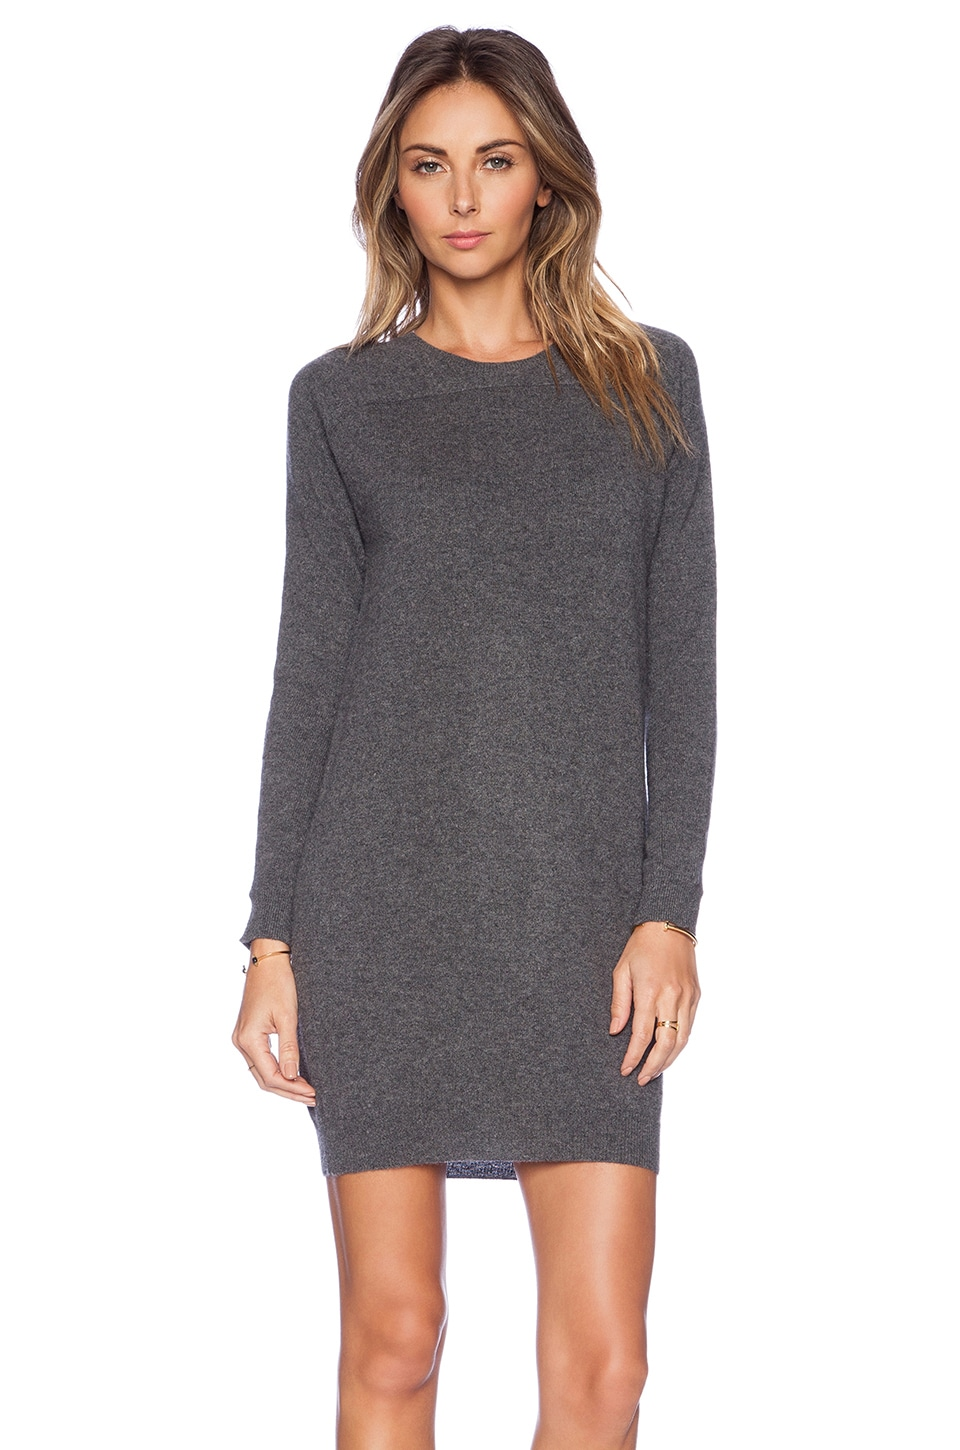 Sweater Dress j Crew Crew Neck Sweater Dress in